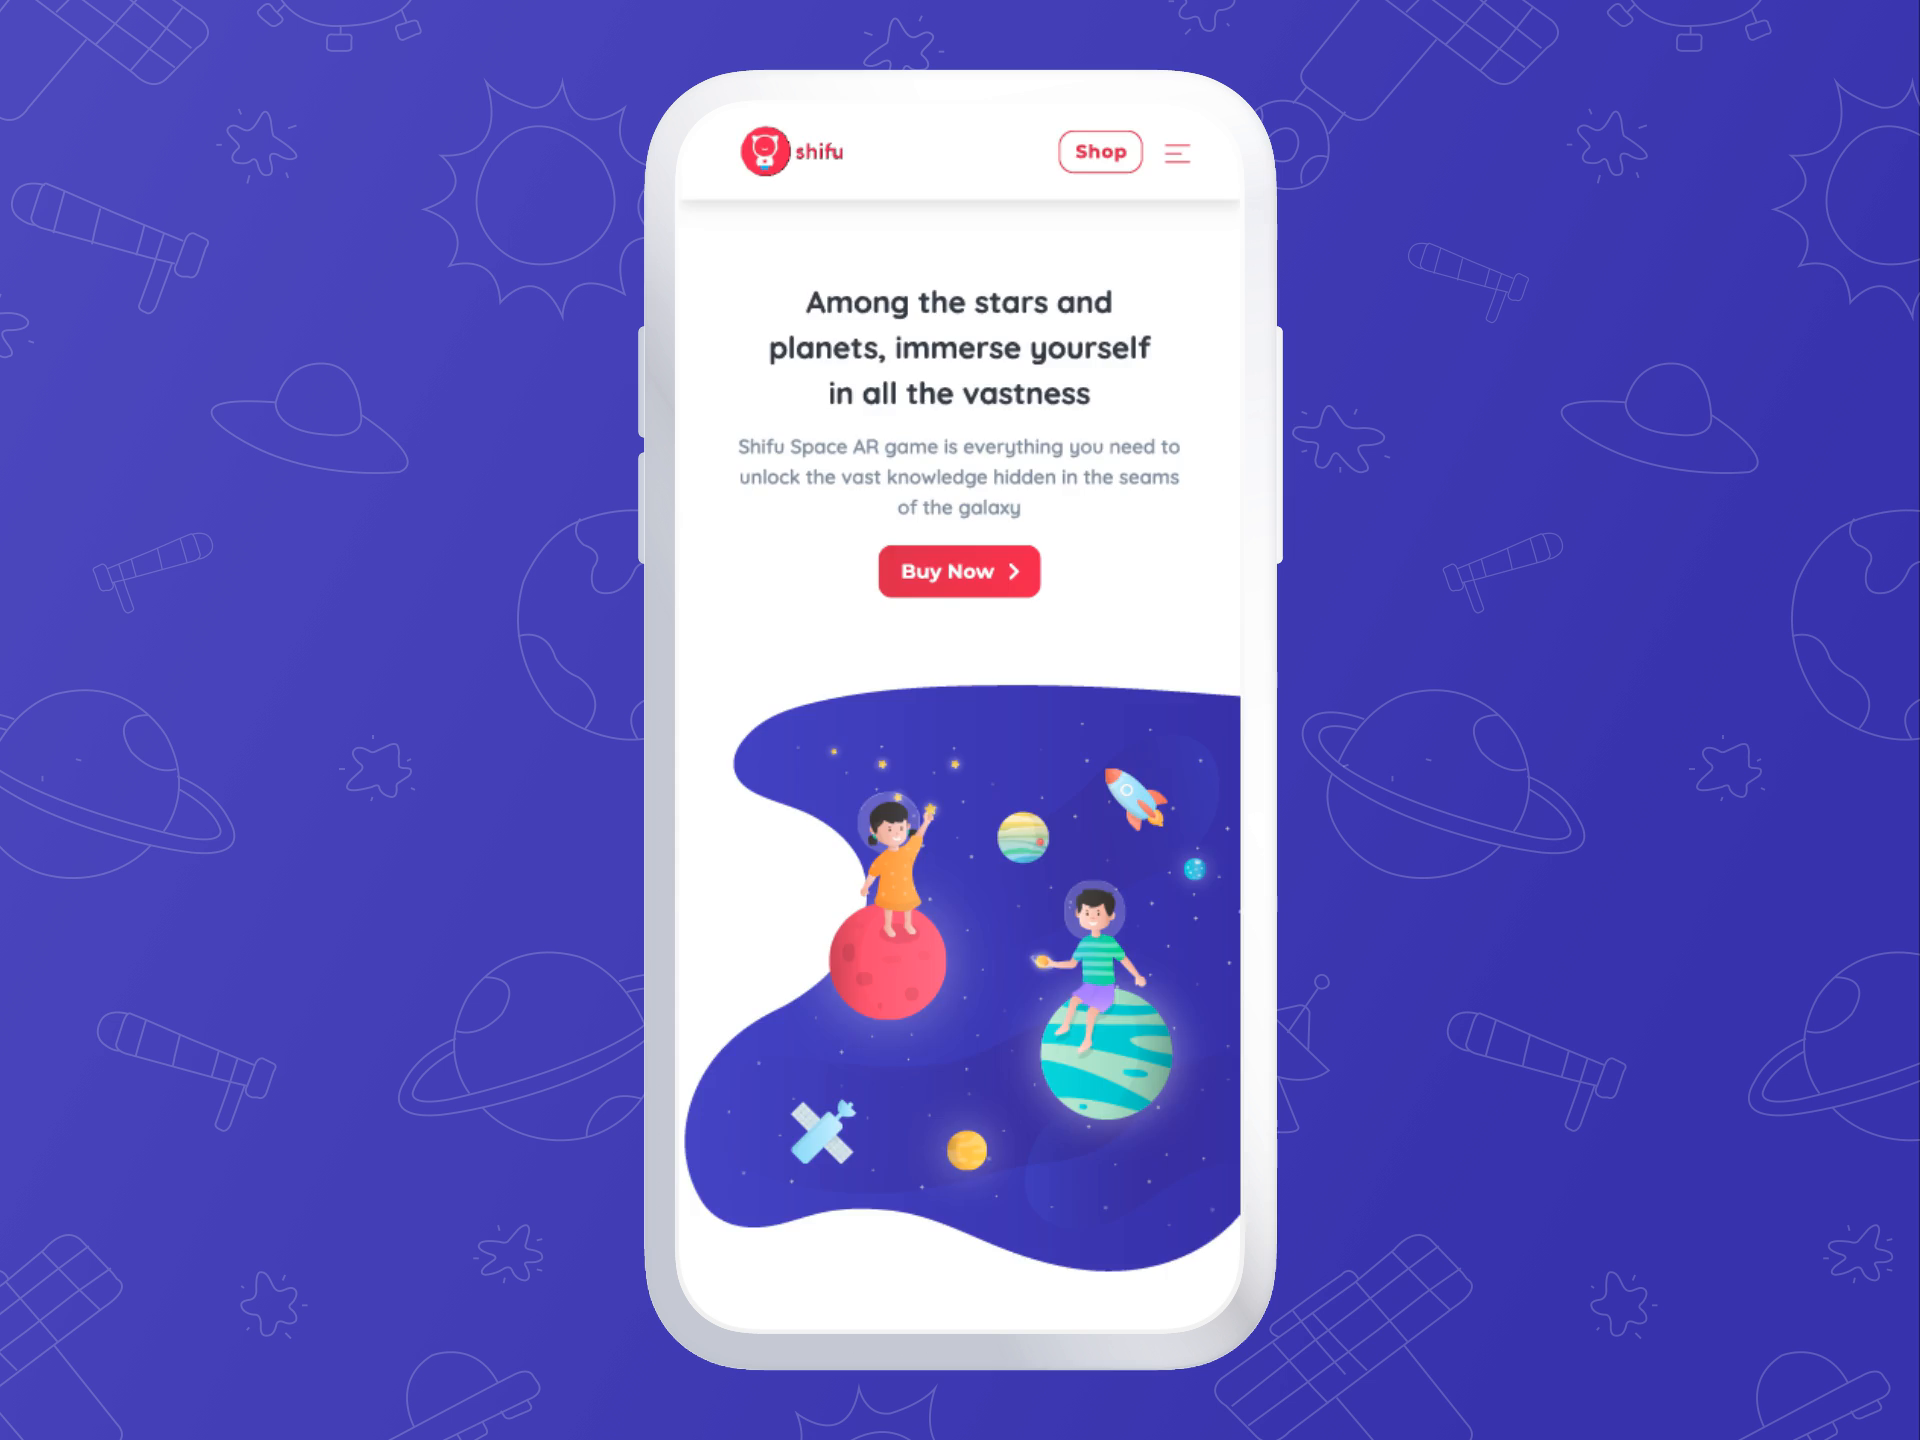 Dribbble post playshifu 2